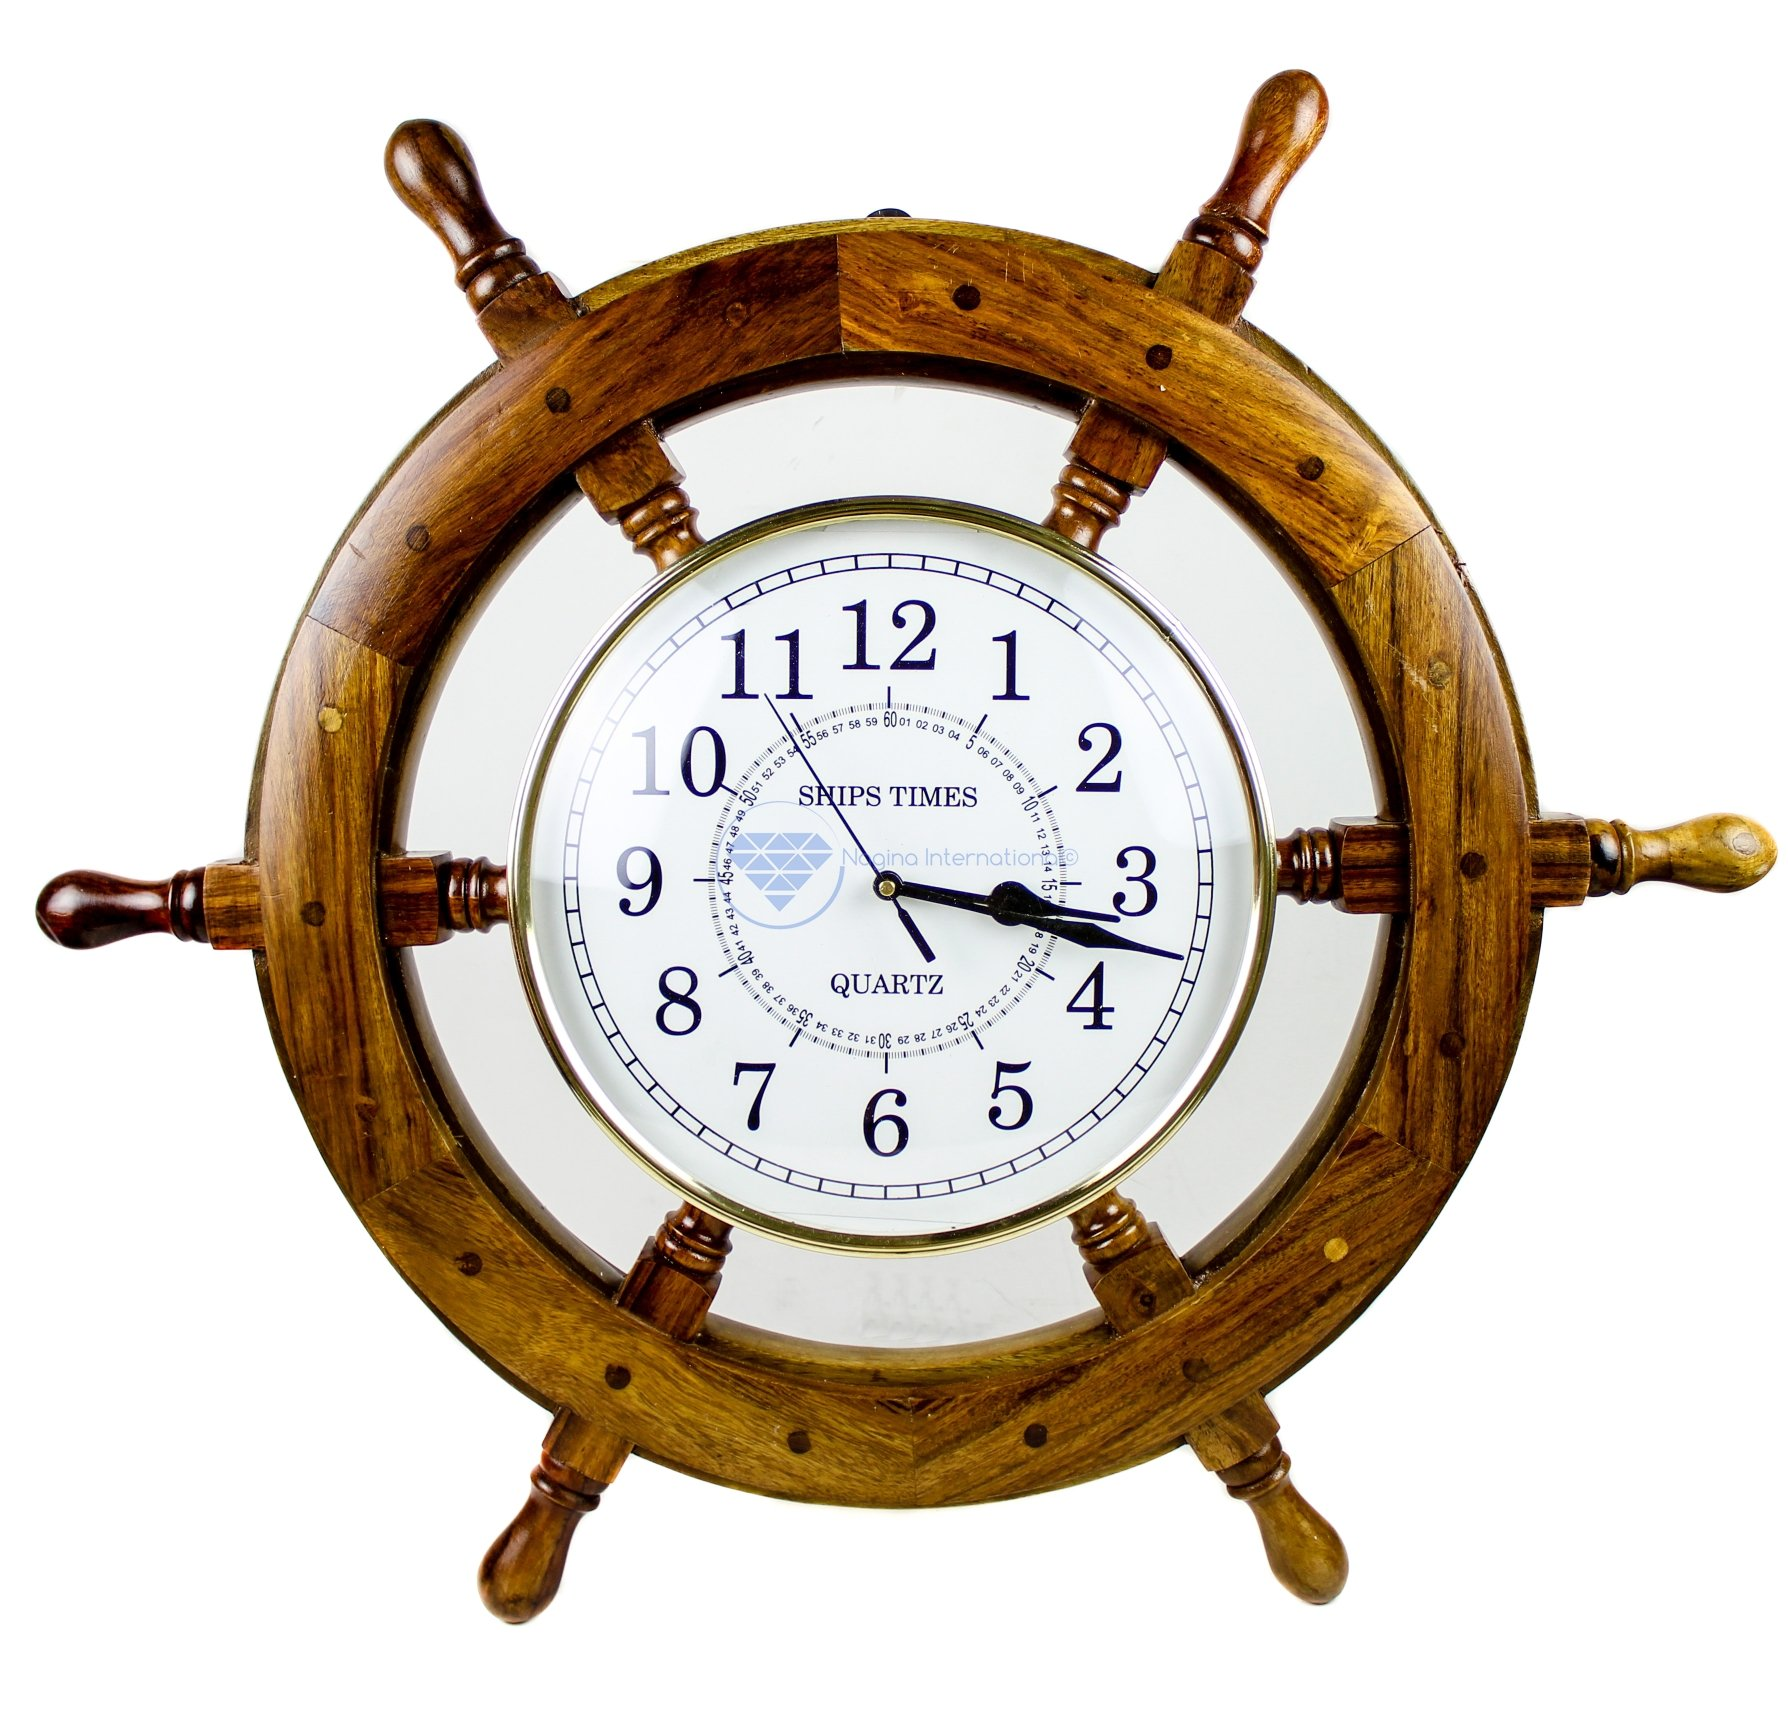 Time's Wall Clock | Nautical Pirate's Ship Wheel | Premium Craft Gift | Nagina International (18 Inches) by Nagina International (Image #1)